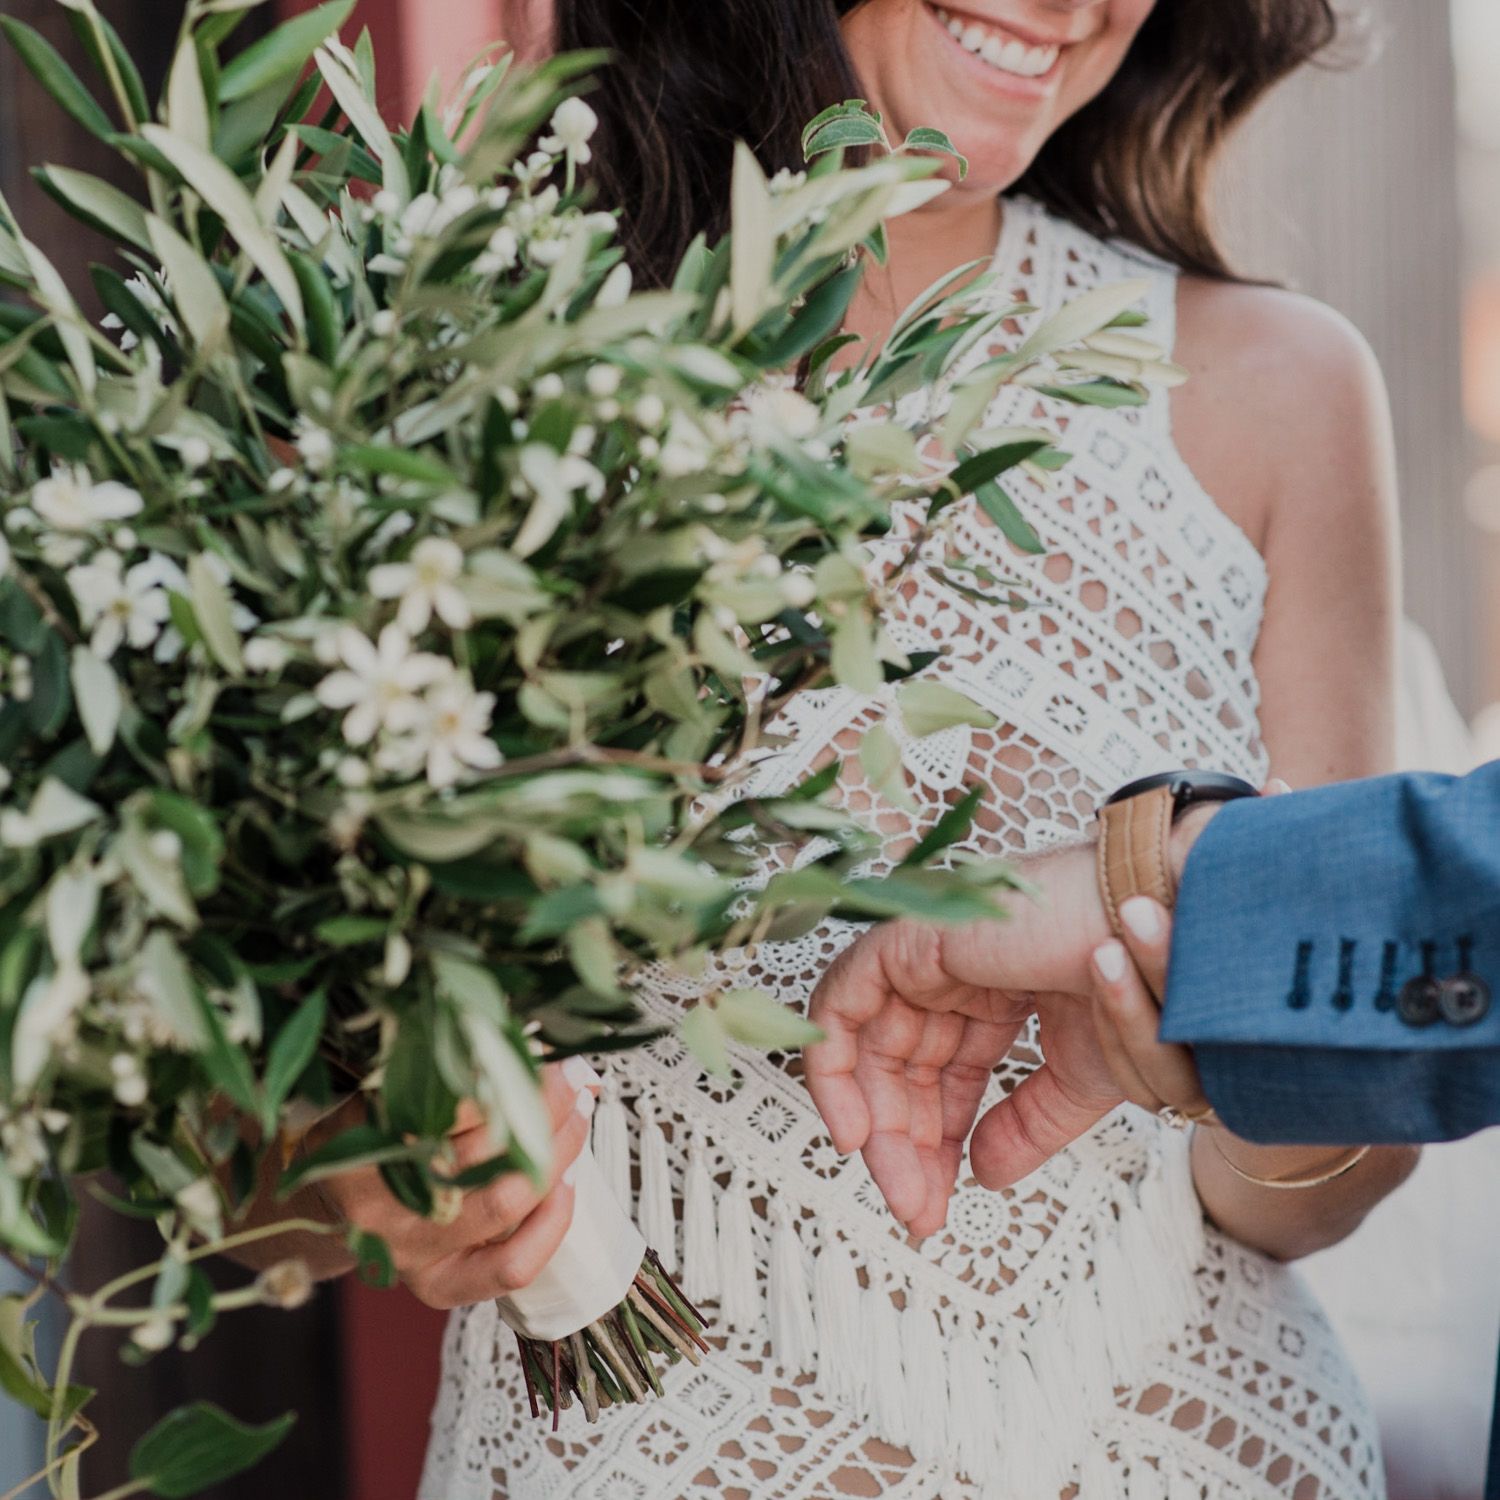 close up of bridal bouquet as bride examines her gift of a watch for the groom